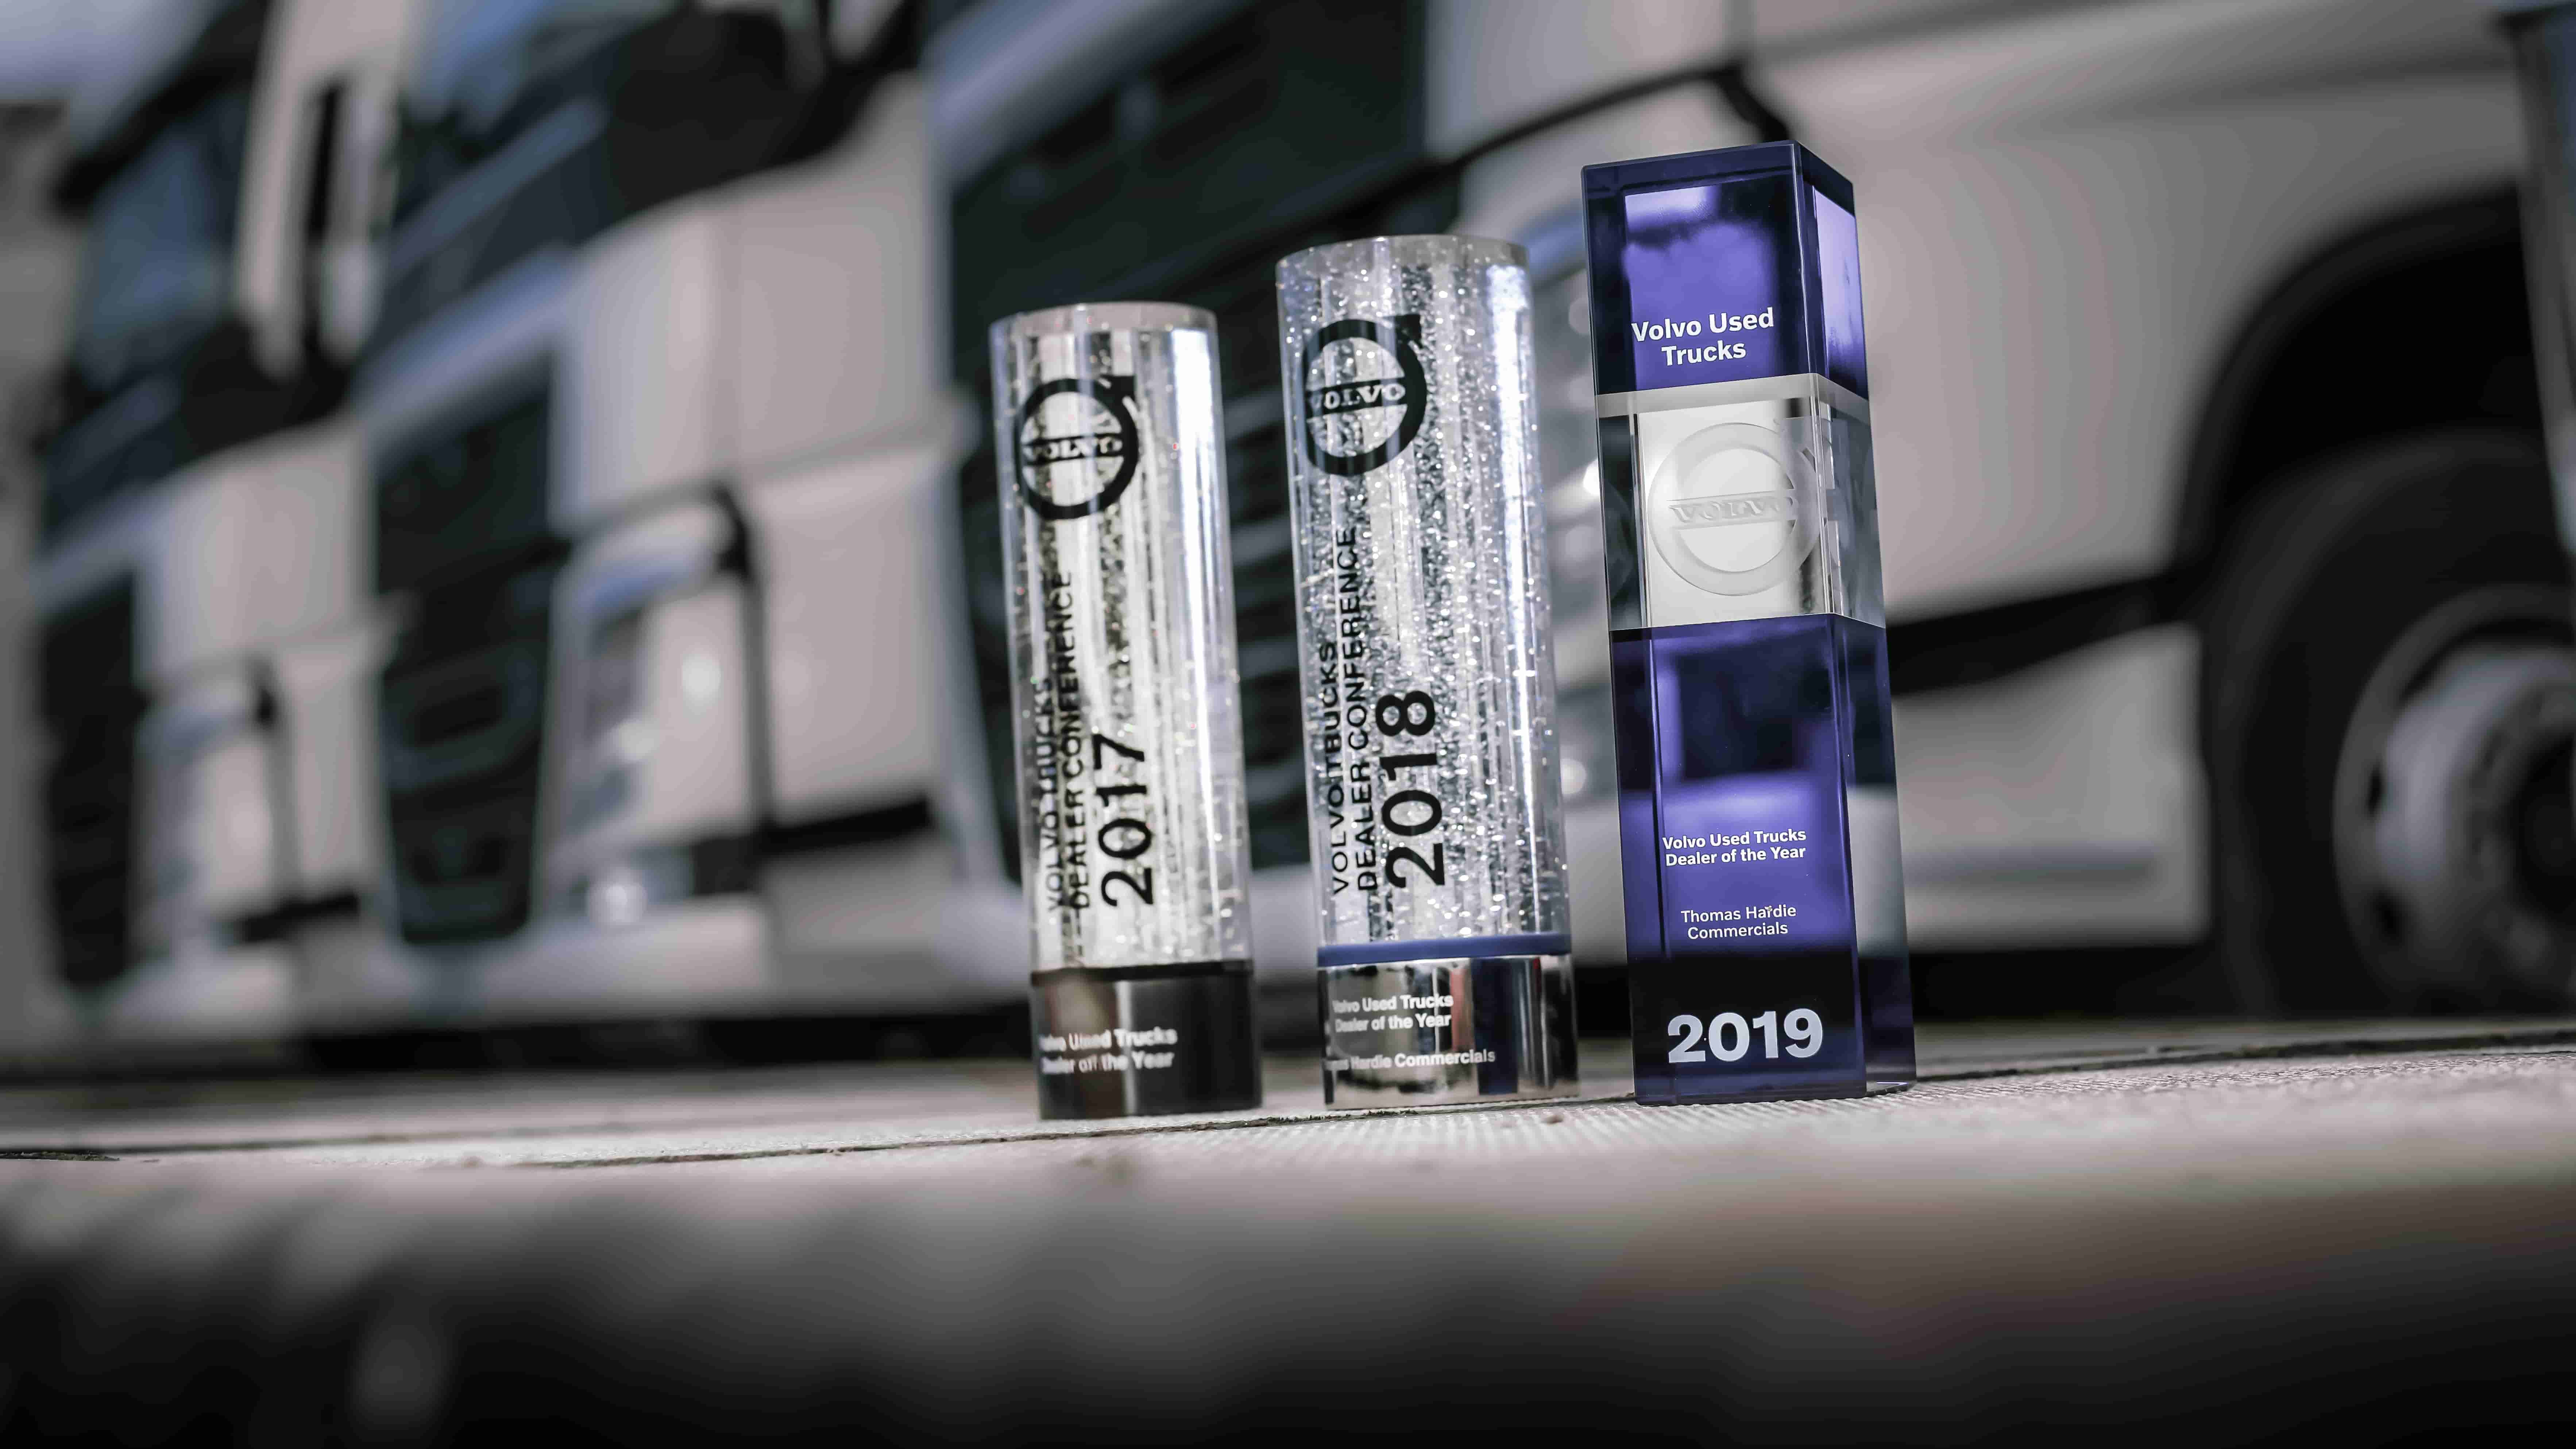 Volvo Used Truck Dealer Of The Year Award